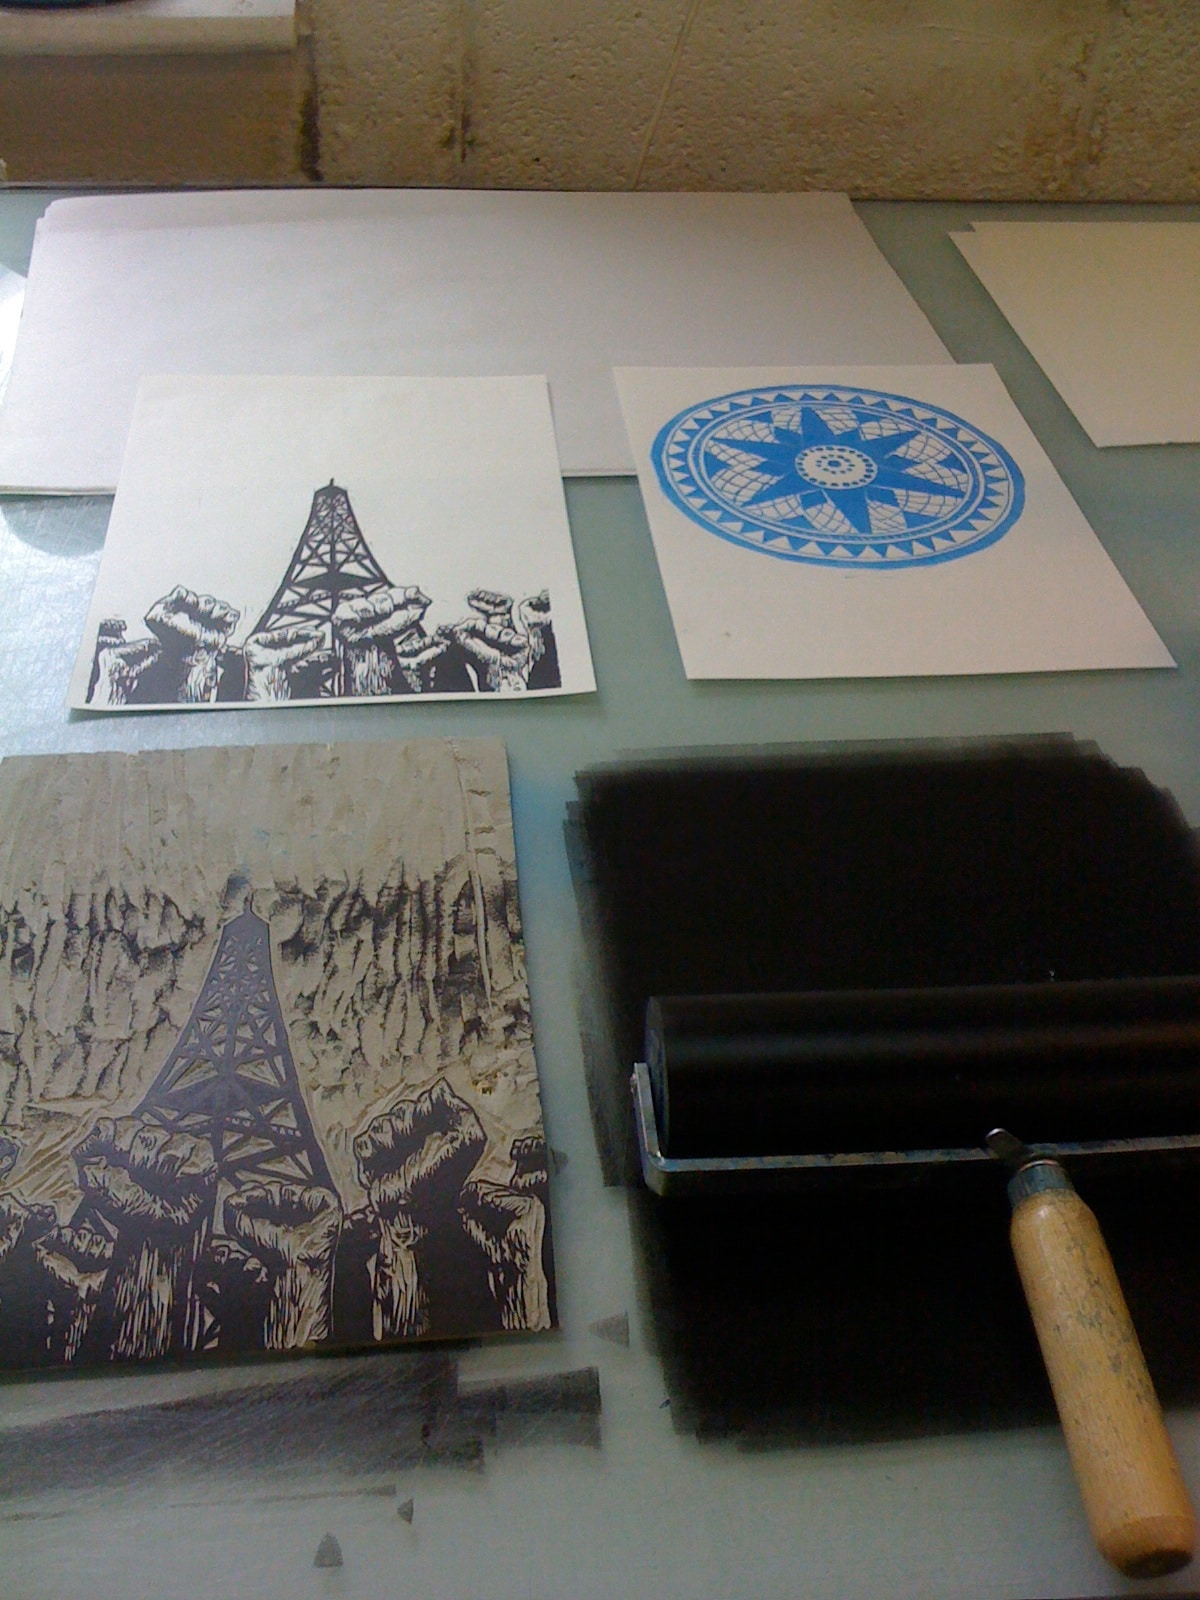 Rolling the lino with ink before printing